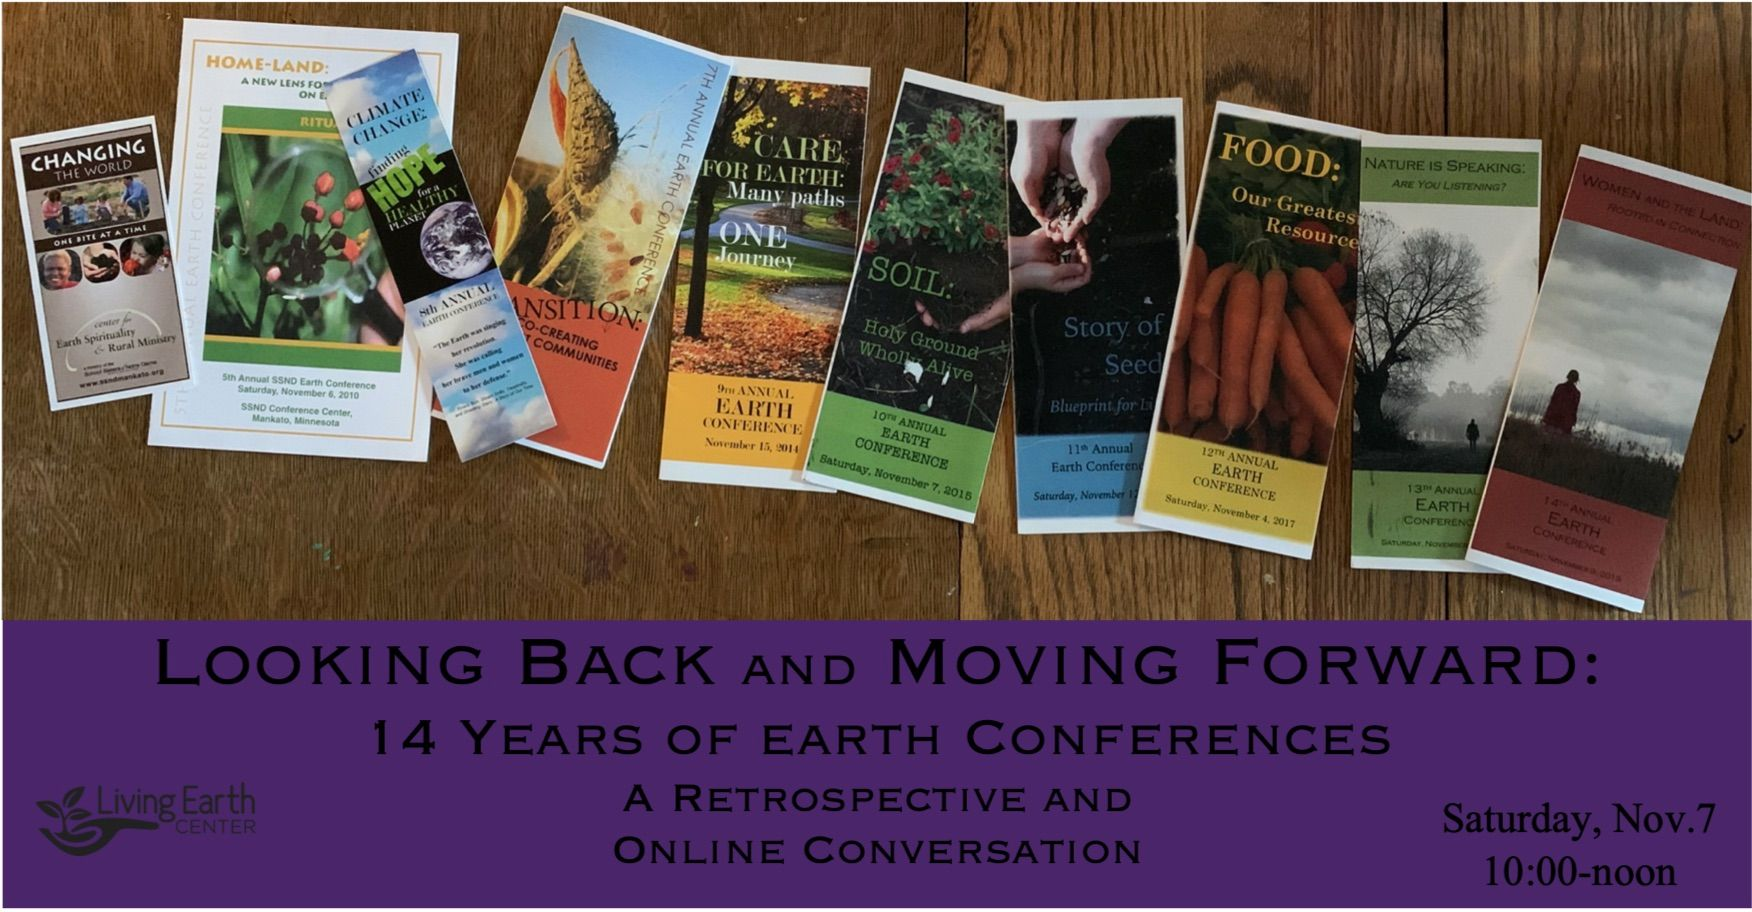 Looking Back and Moving Forward: 14 Years of Earth Conferences